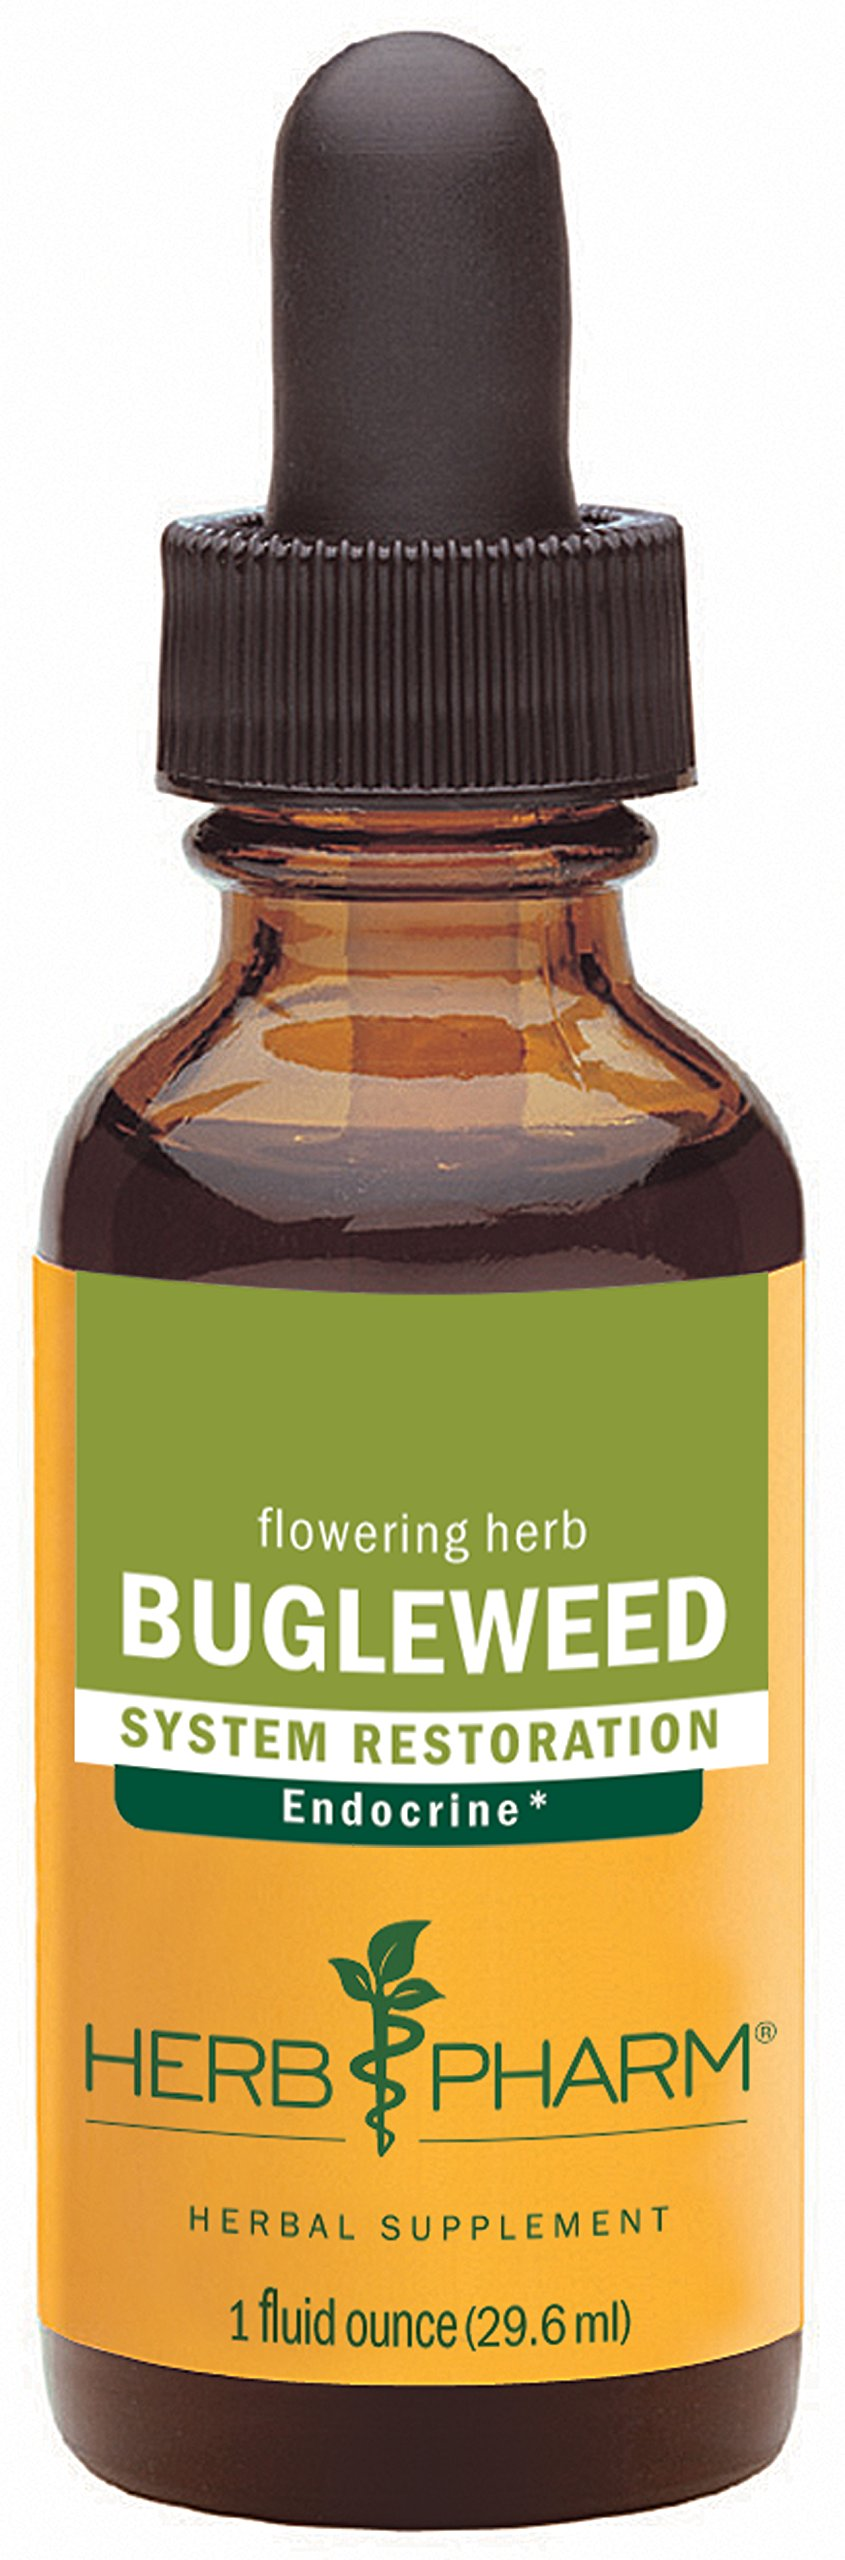 Herb Pharm Bugleweed Extract for Endocrine System Support - 1 Ounce